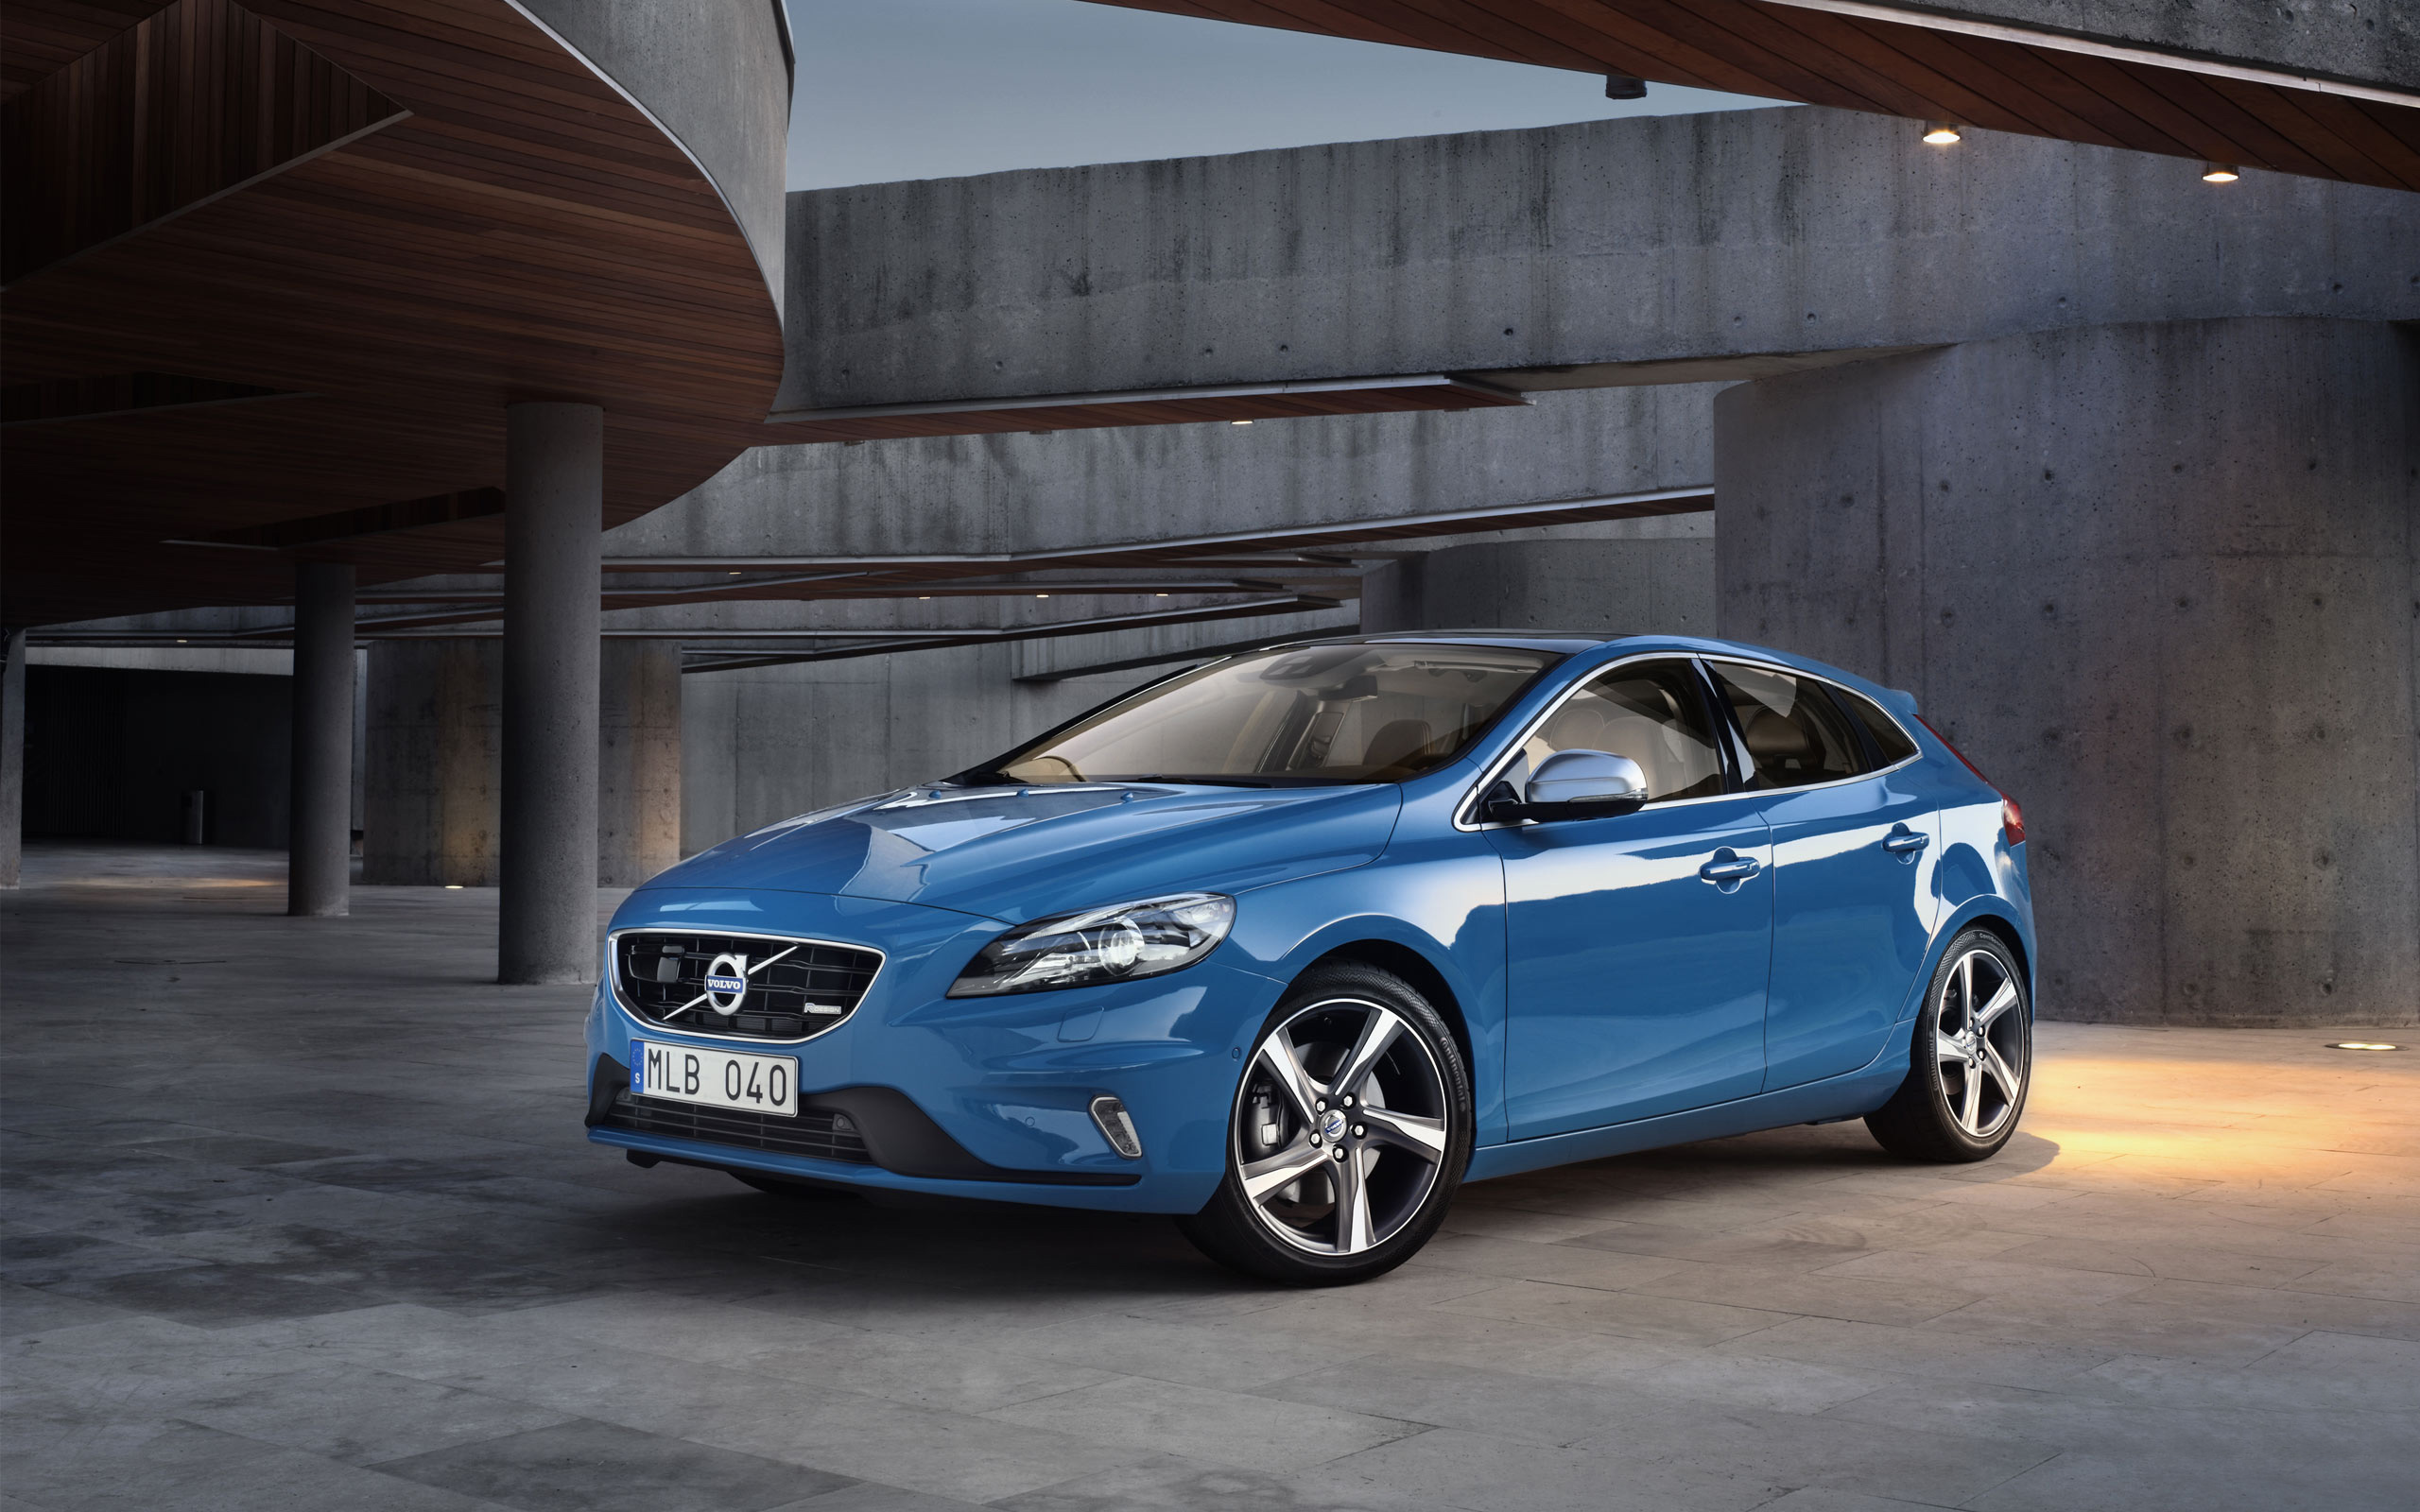 Volvo V40 2013 Wallpaper HD Car Wallpapers ID 3068 2560x1600